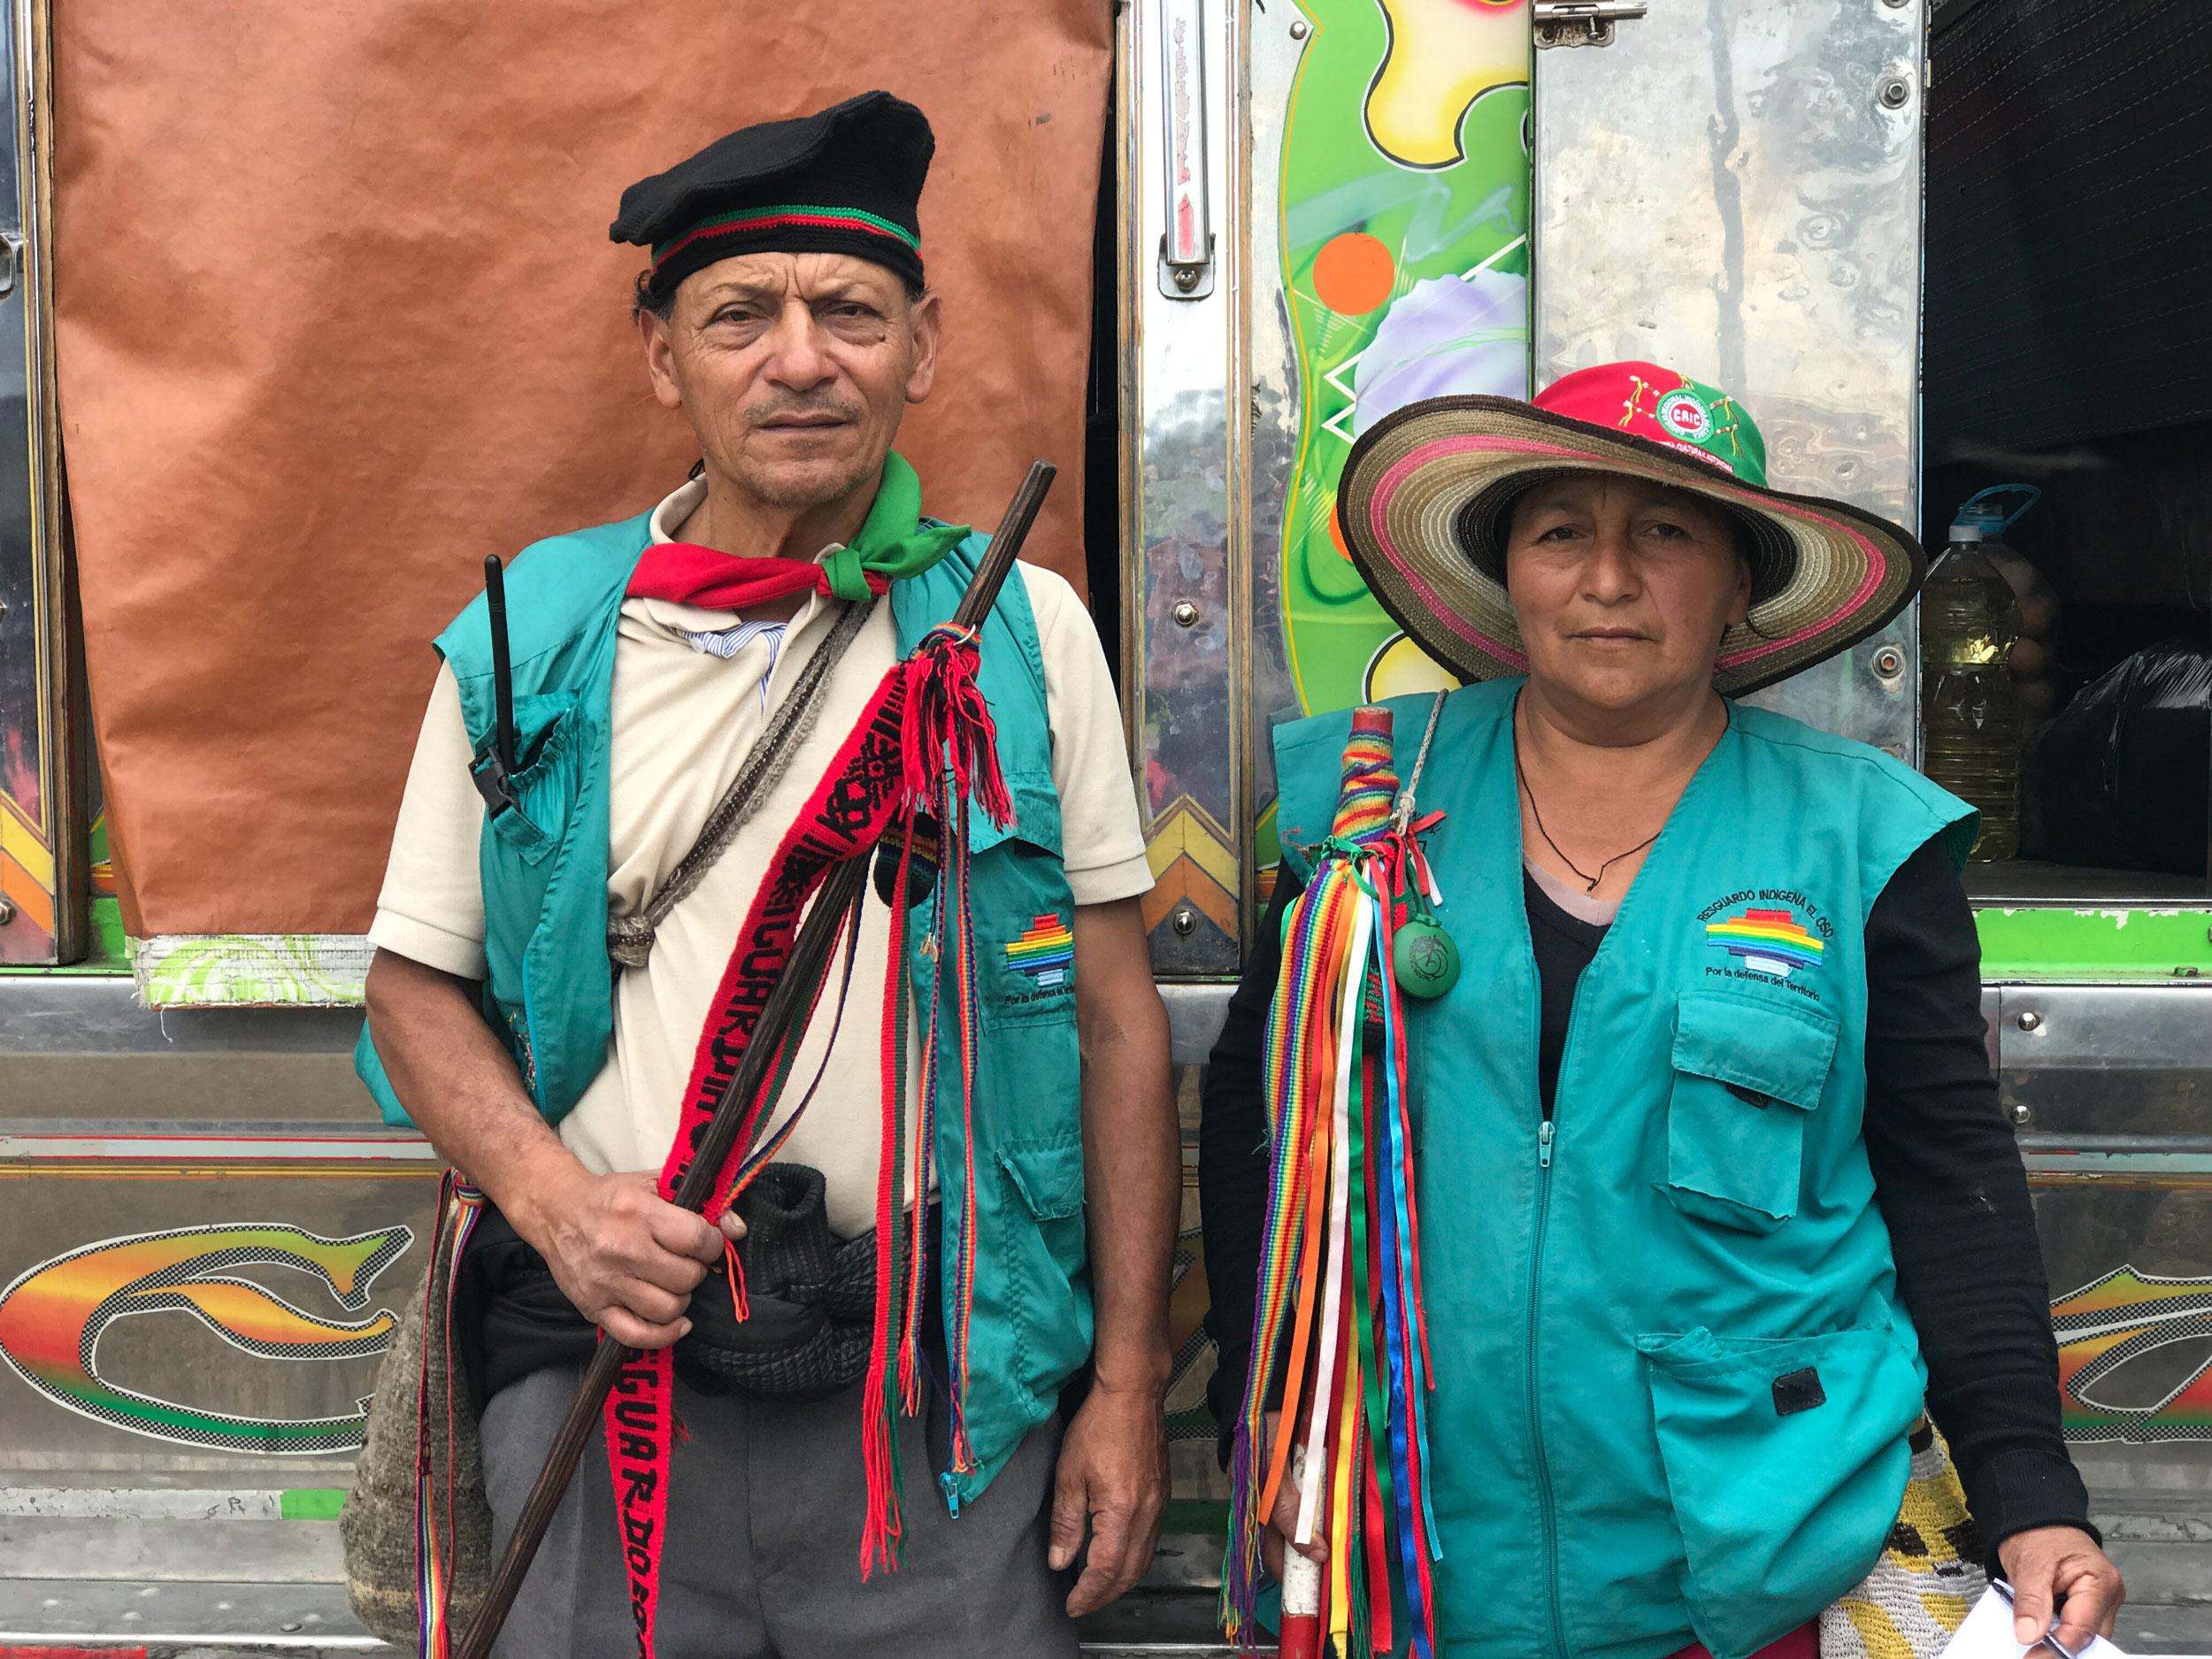 An older Indigenous couple is shown both wearing green vests.